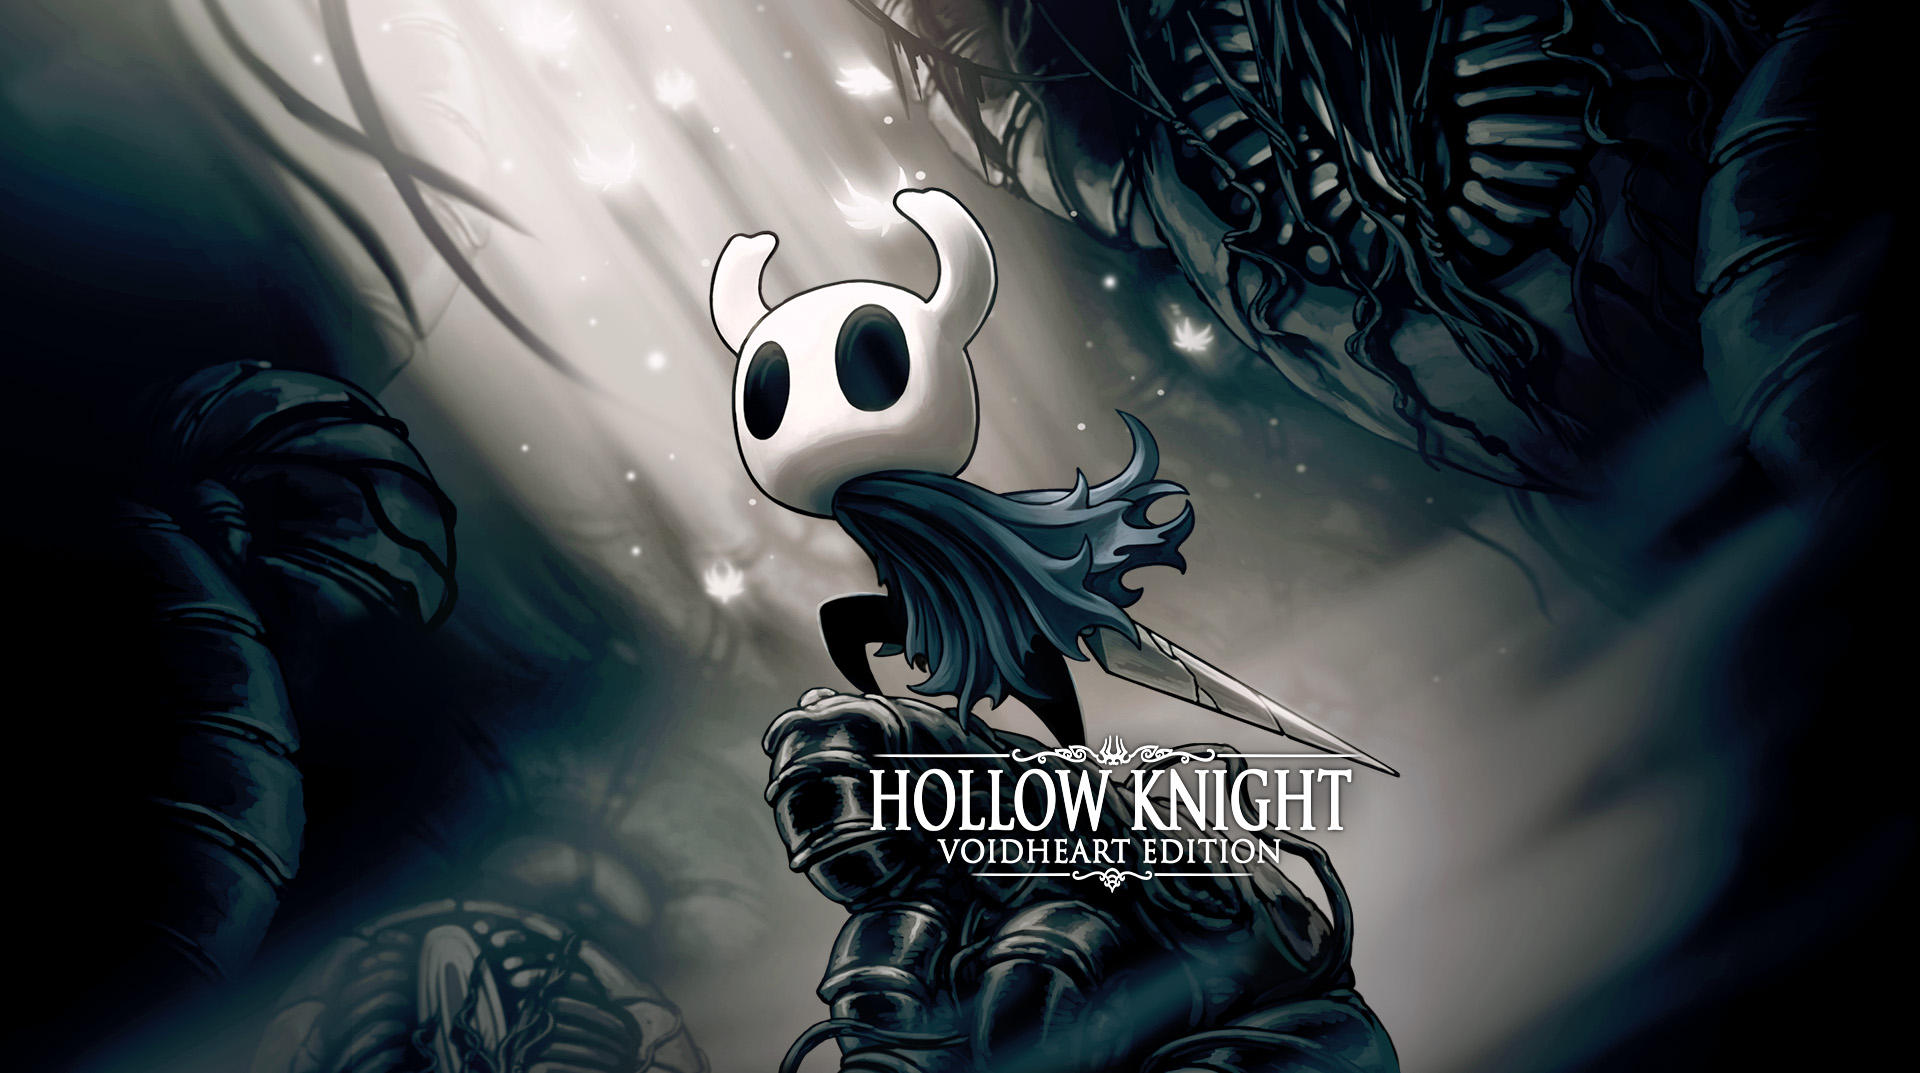 Hollow knight: Voidheart edition image